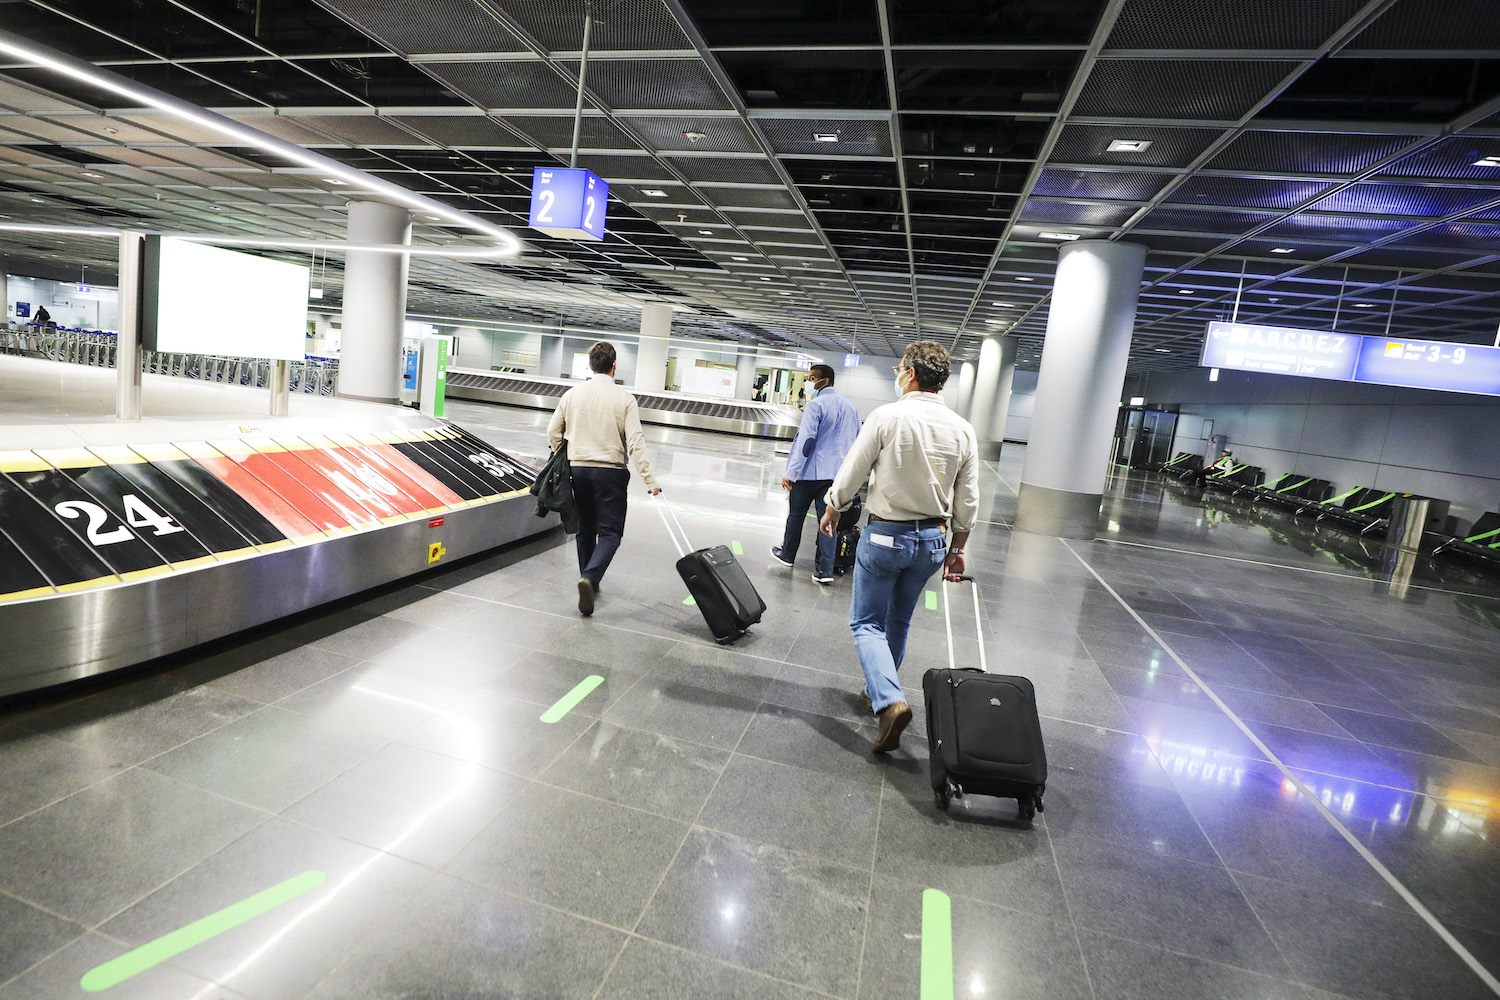 Travellers wheel luggage in the baggage-claim hall at Frankfurt Airport in Germany. (Bloomberg Photo)